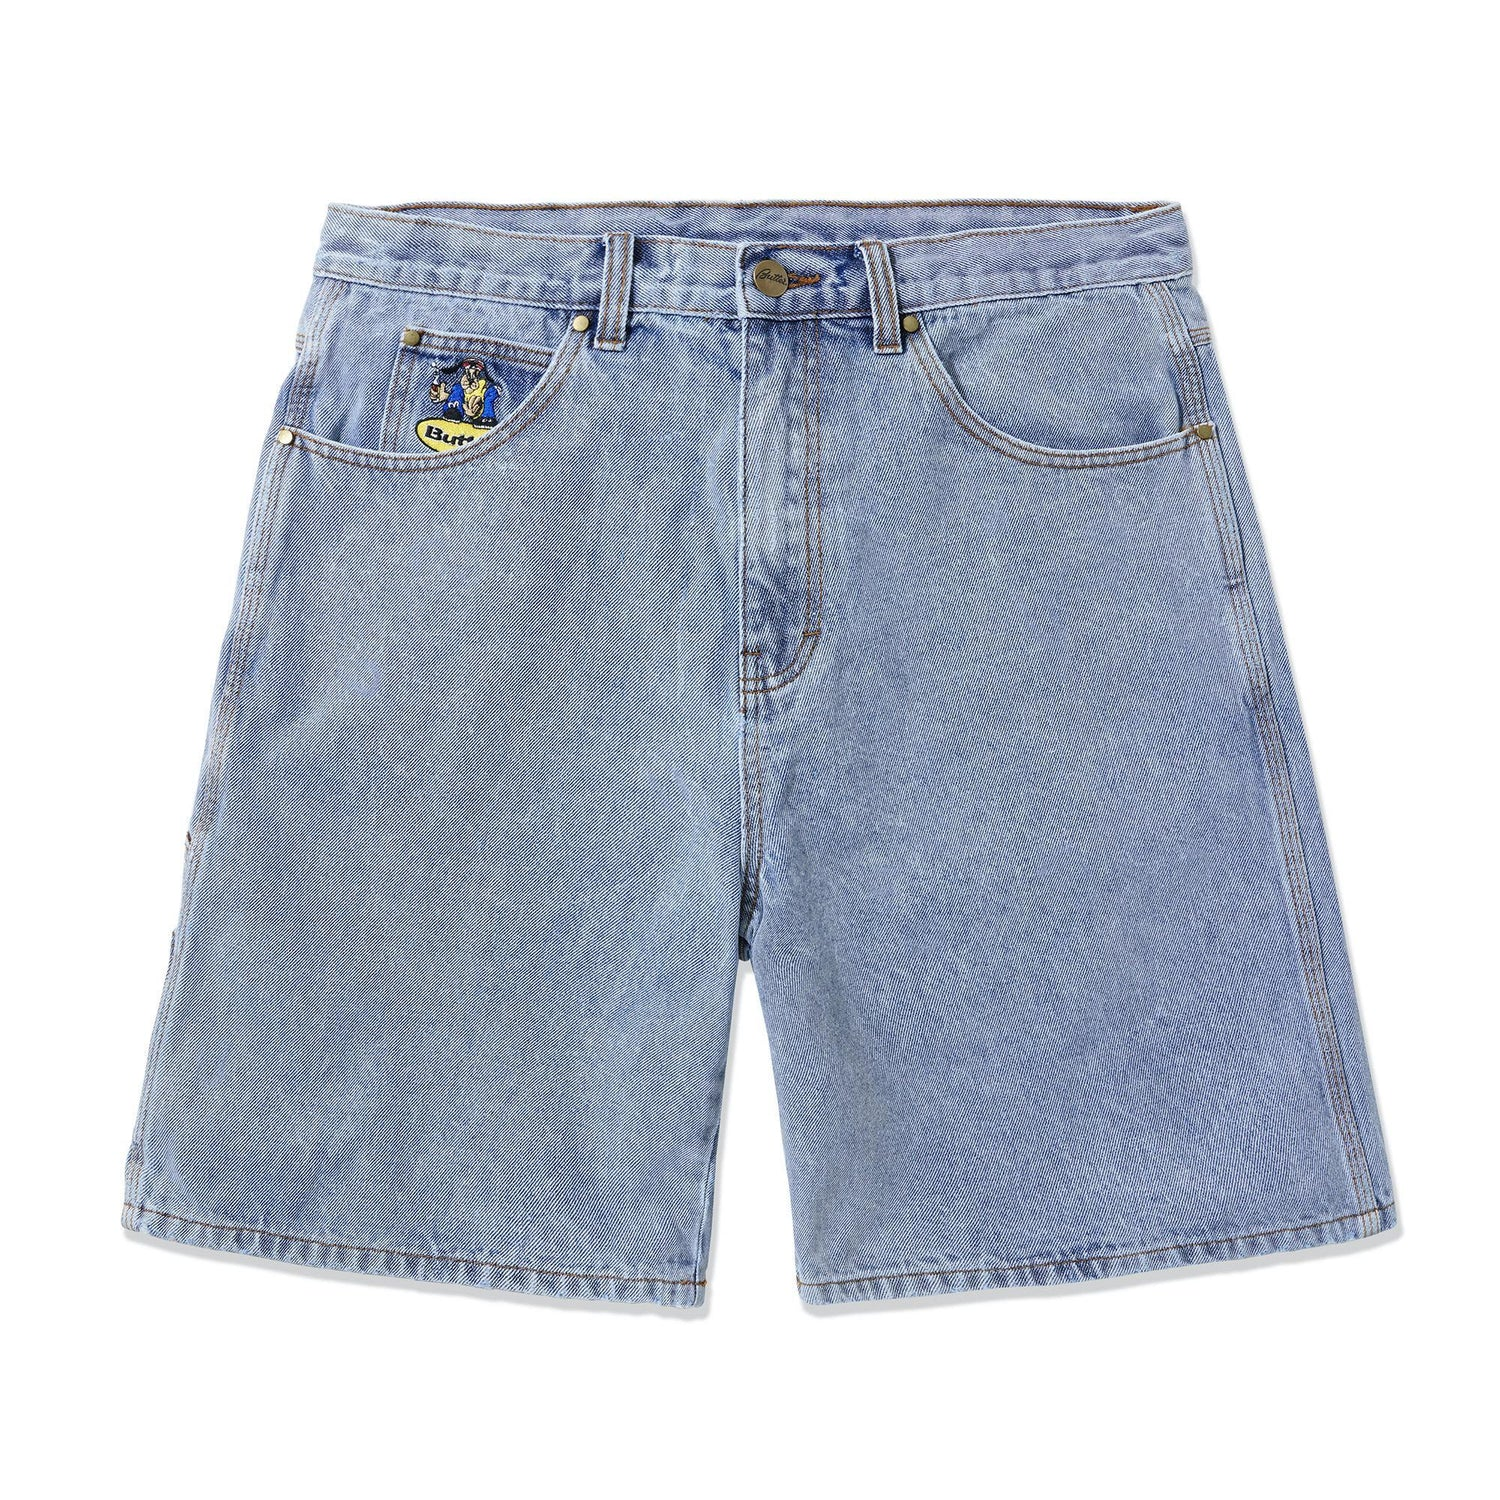 Homeboy Denim Shorts, Washed Light Blue